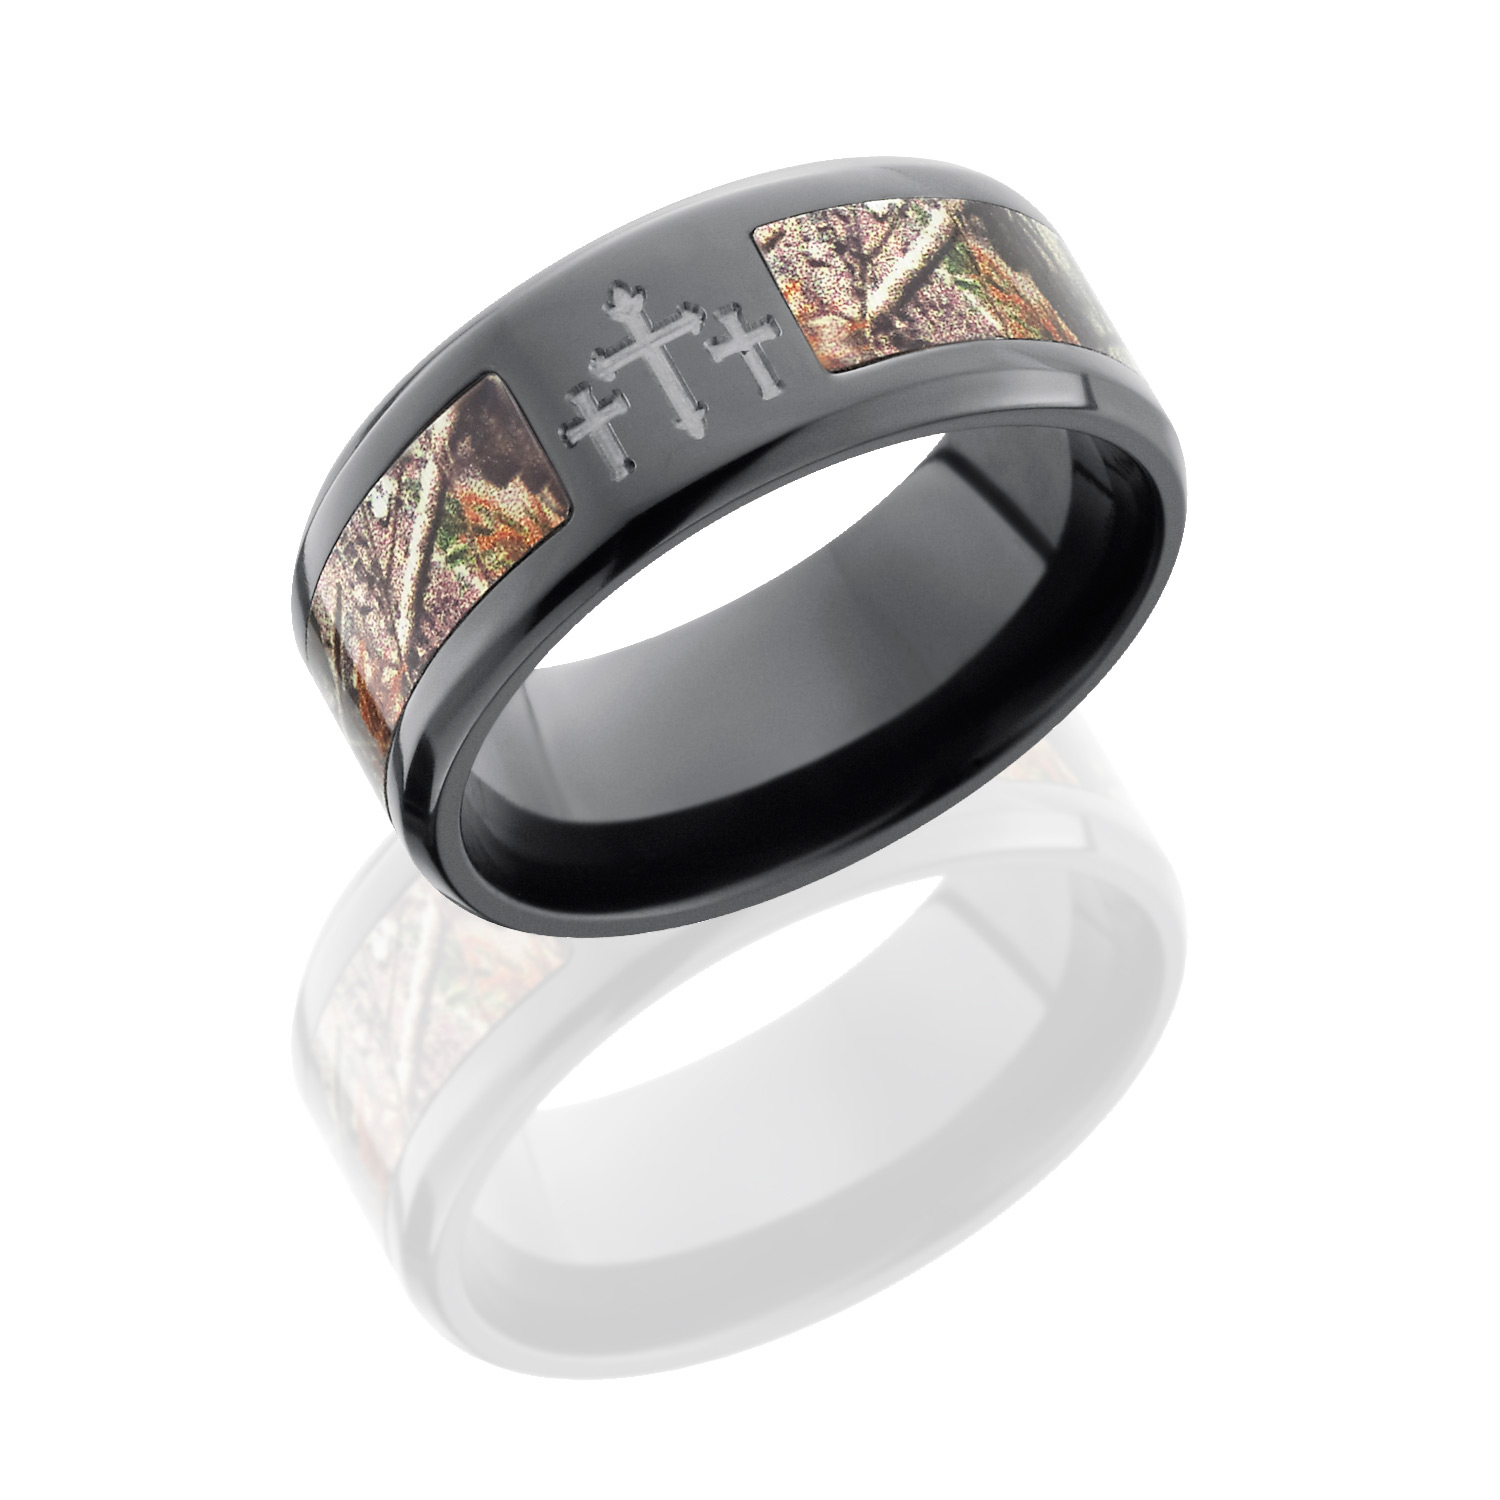 Lashbrook Zcamo9b15seg 3xrtap Polish Camo Wedding Ring Or